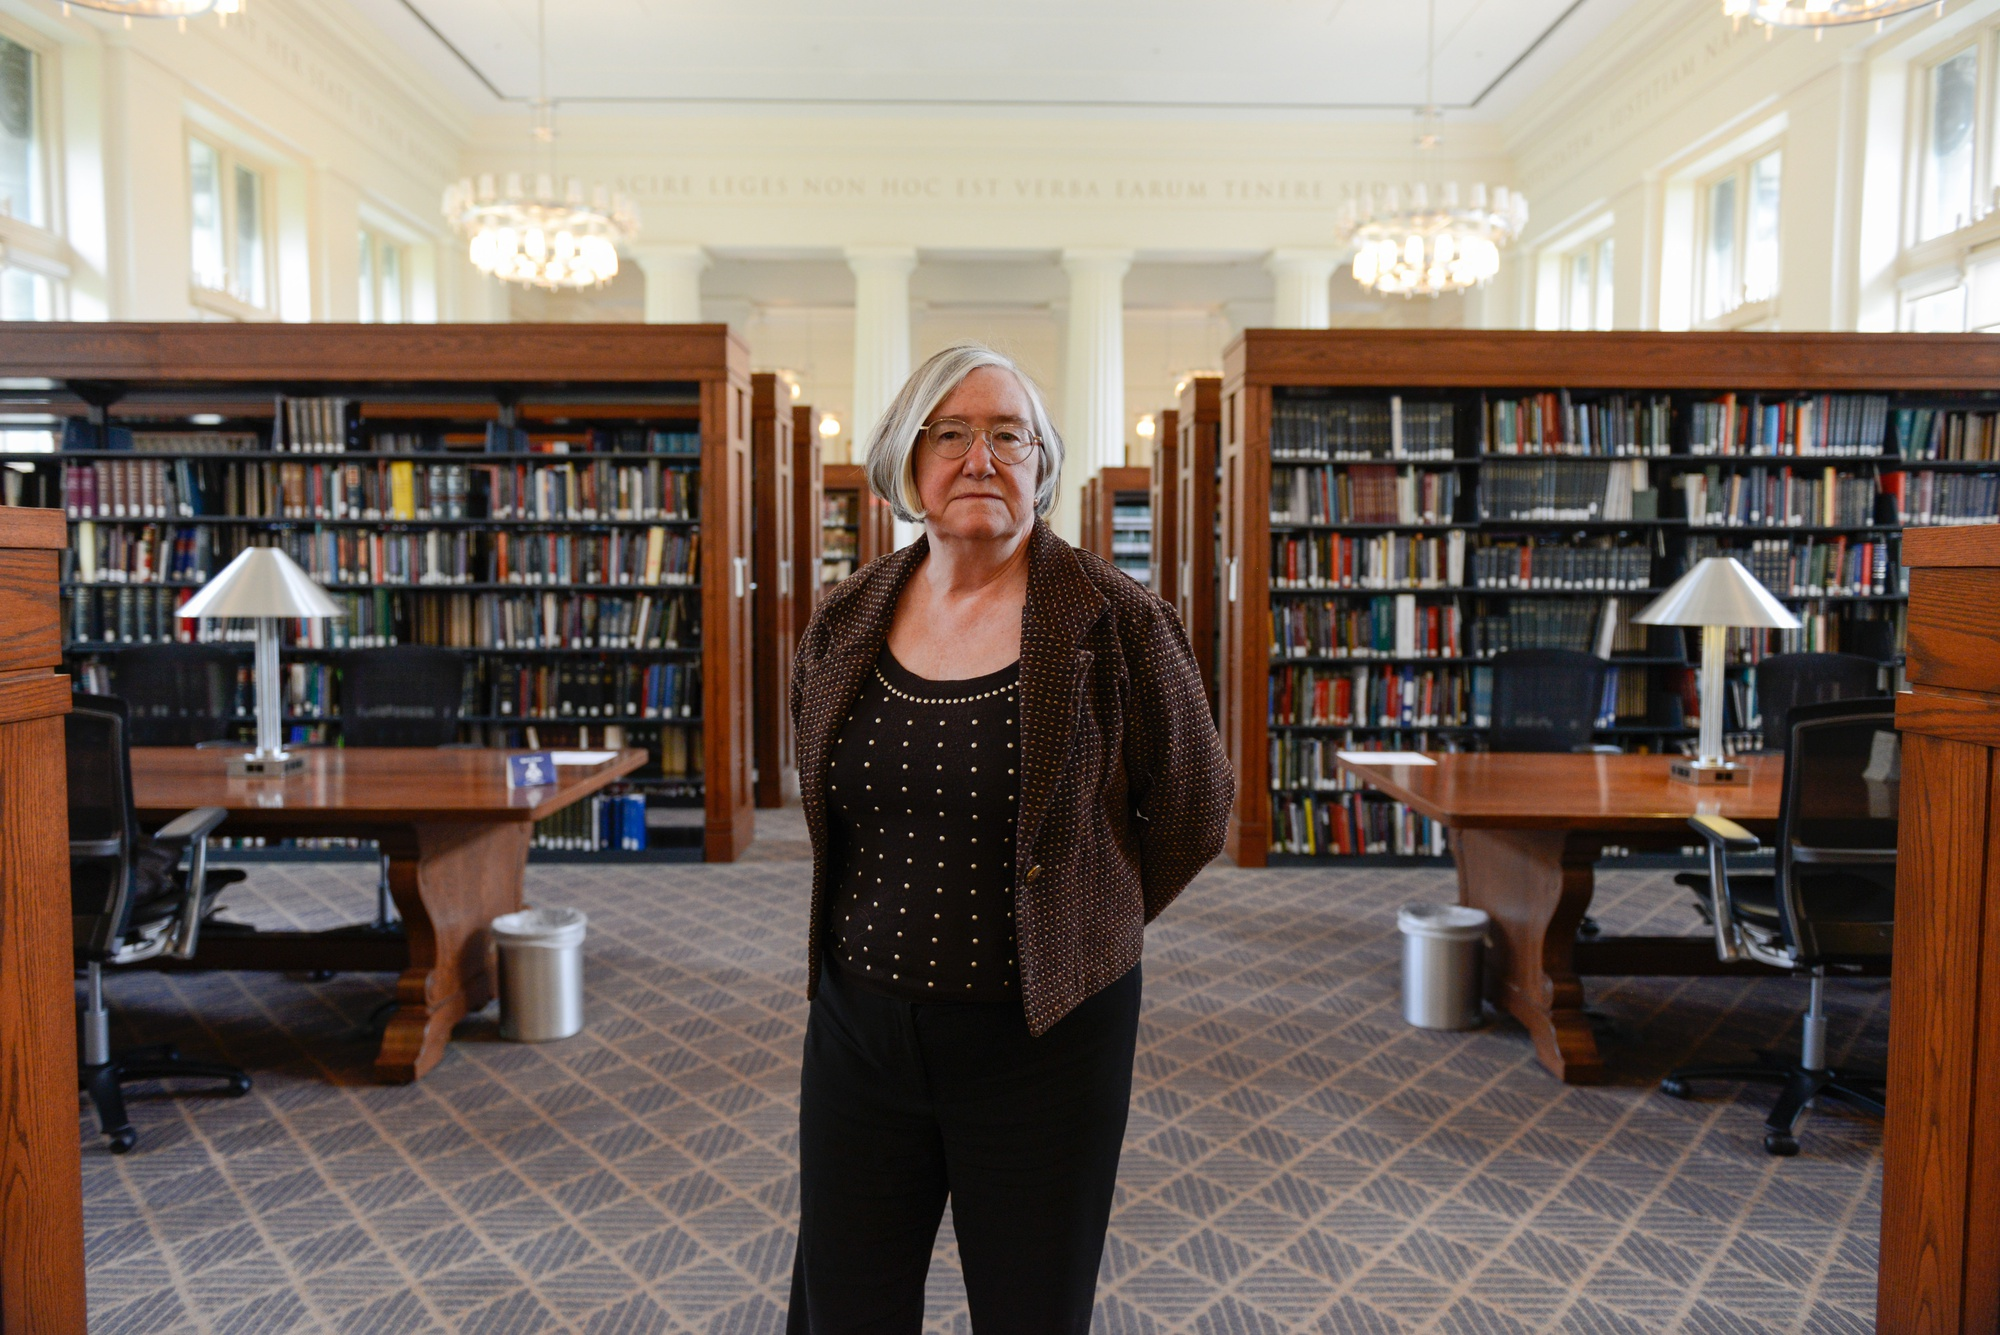 Janet E. Halley poses inside the Harvard Law School library, a place she defines as a quintessential location in the Law School experience.